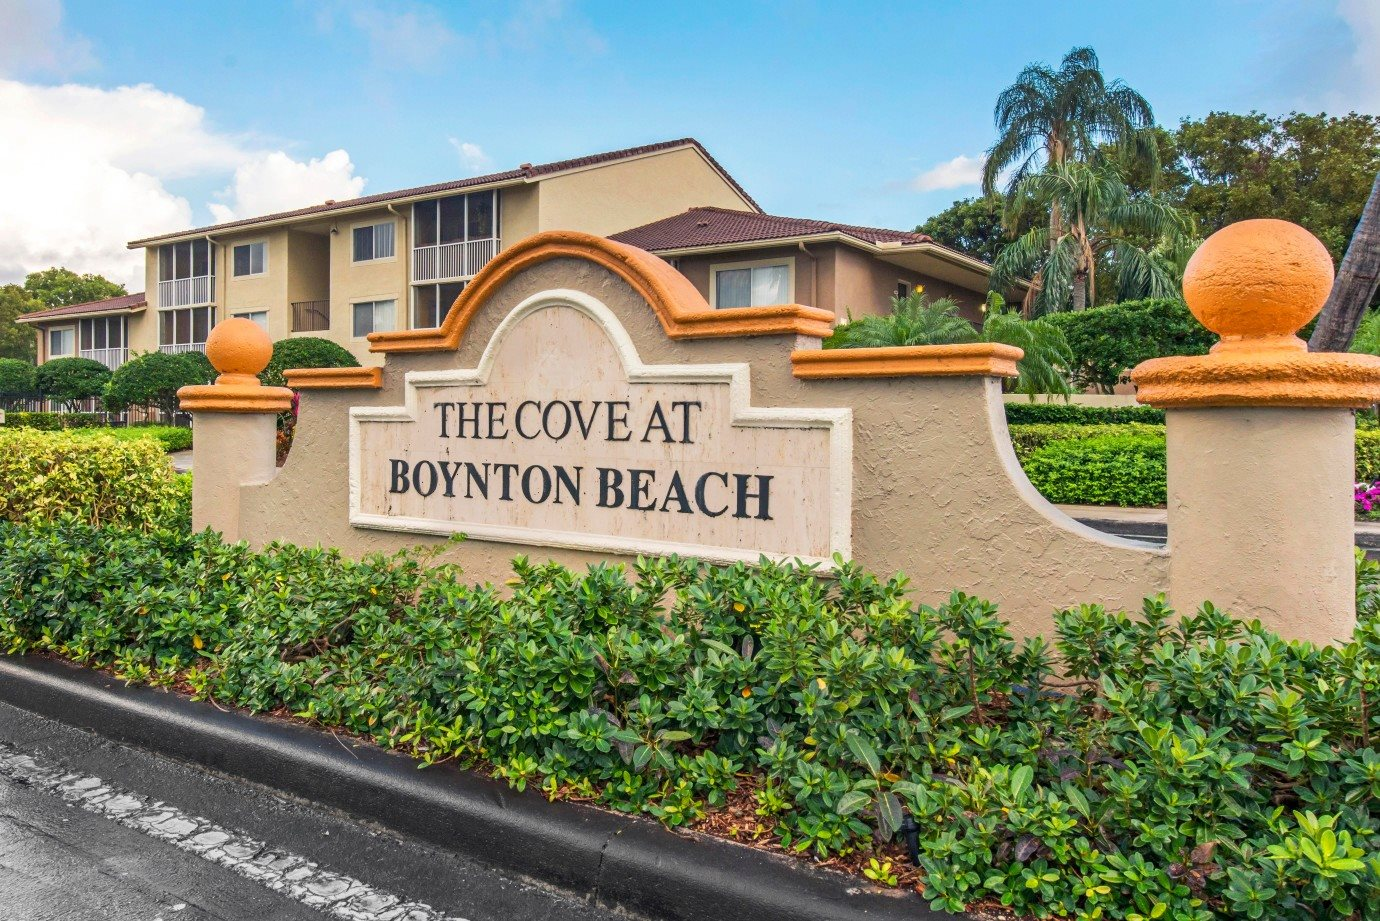 The Cove at Boyton Beach| Entrance